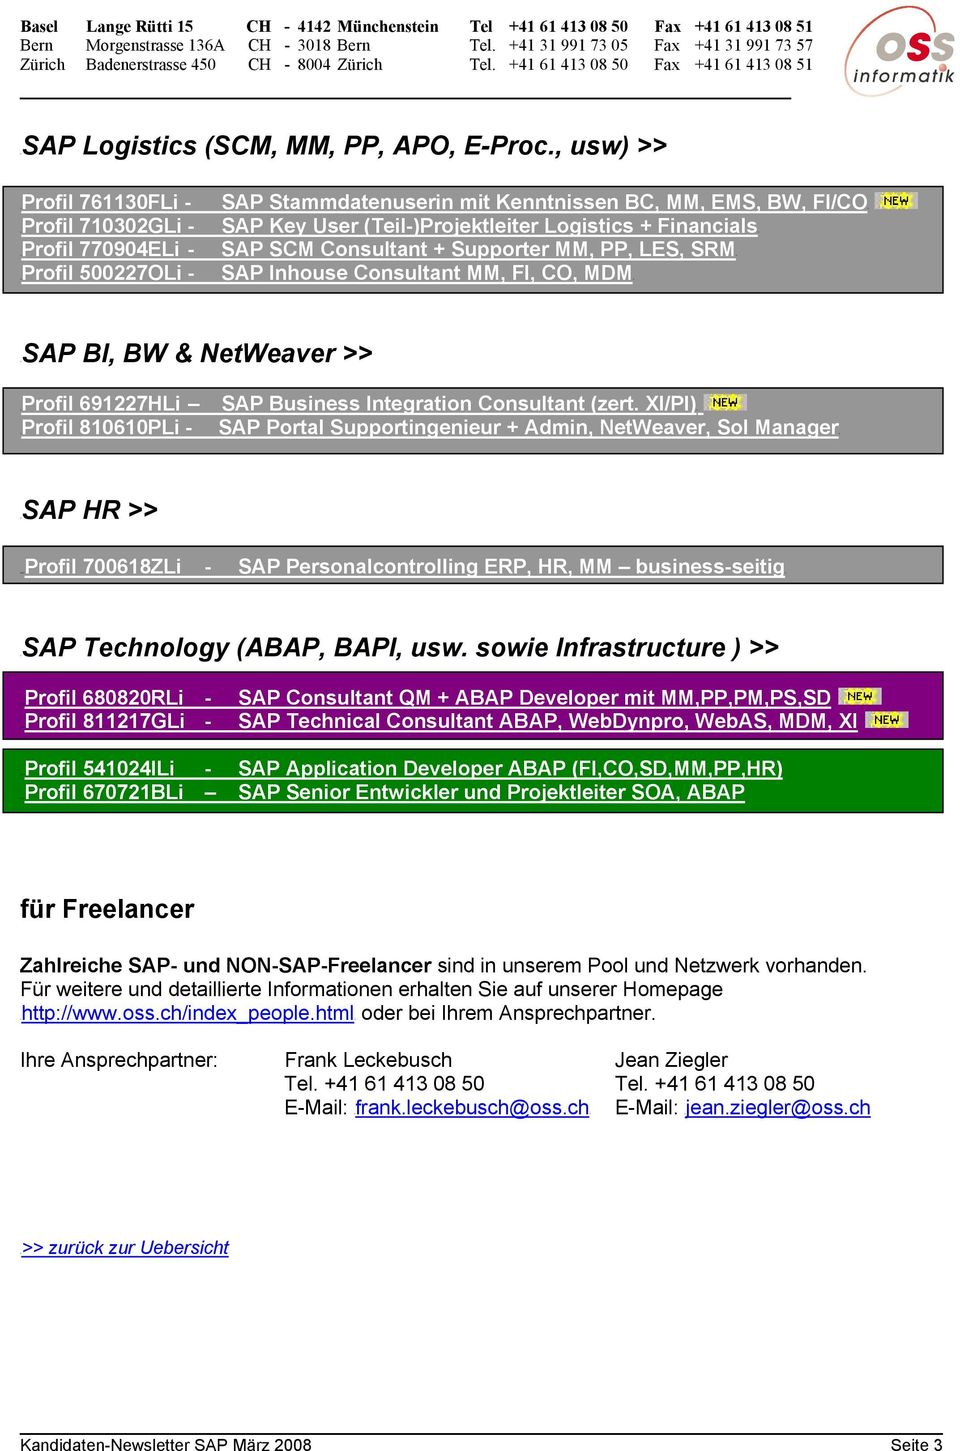 FinancialsH SAP SCM Consultant + Supporter MM, PP, LES, SRMH SAP Inhouse Consultant MM, FI, CO, MDMH HSAP BI, BW & NetWeaver >> HProfil 691227HLi HProfil 810610PLi - SAP Business Integration